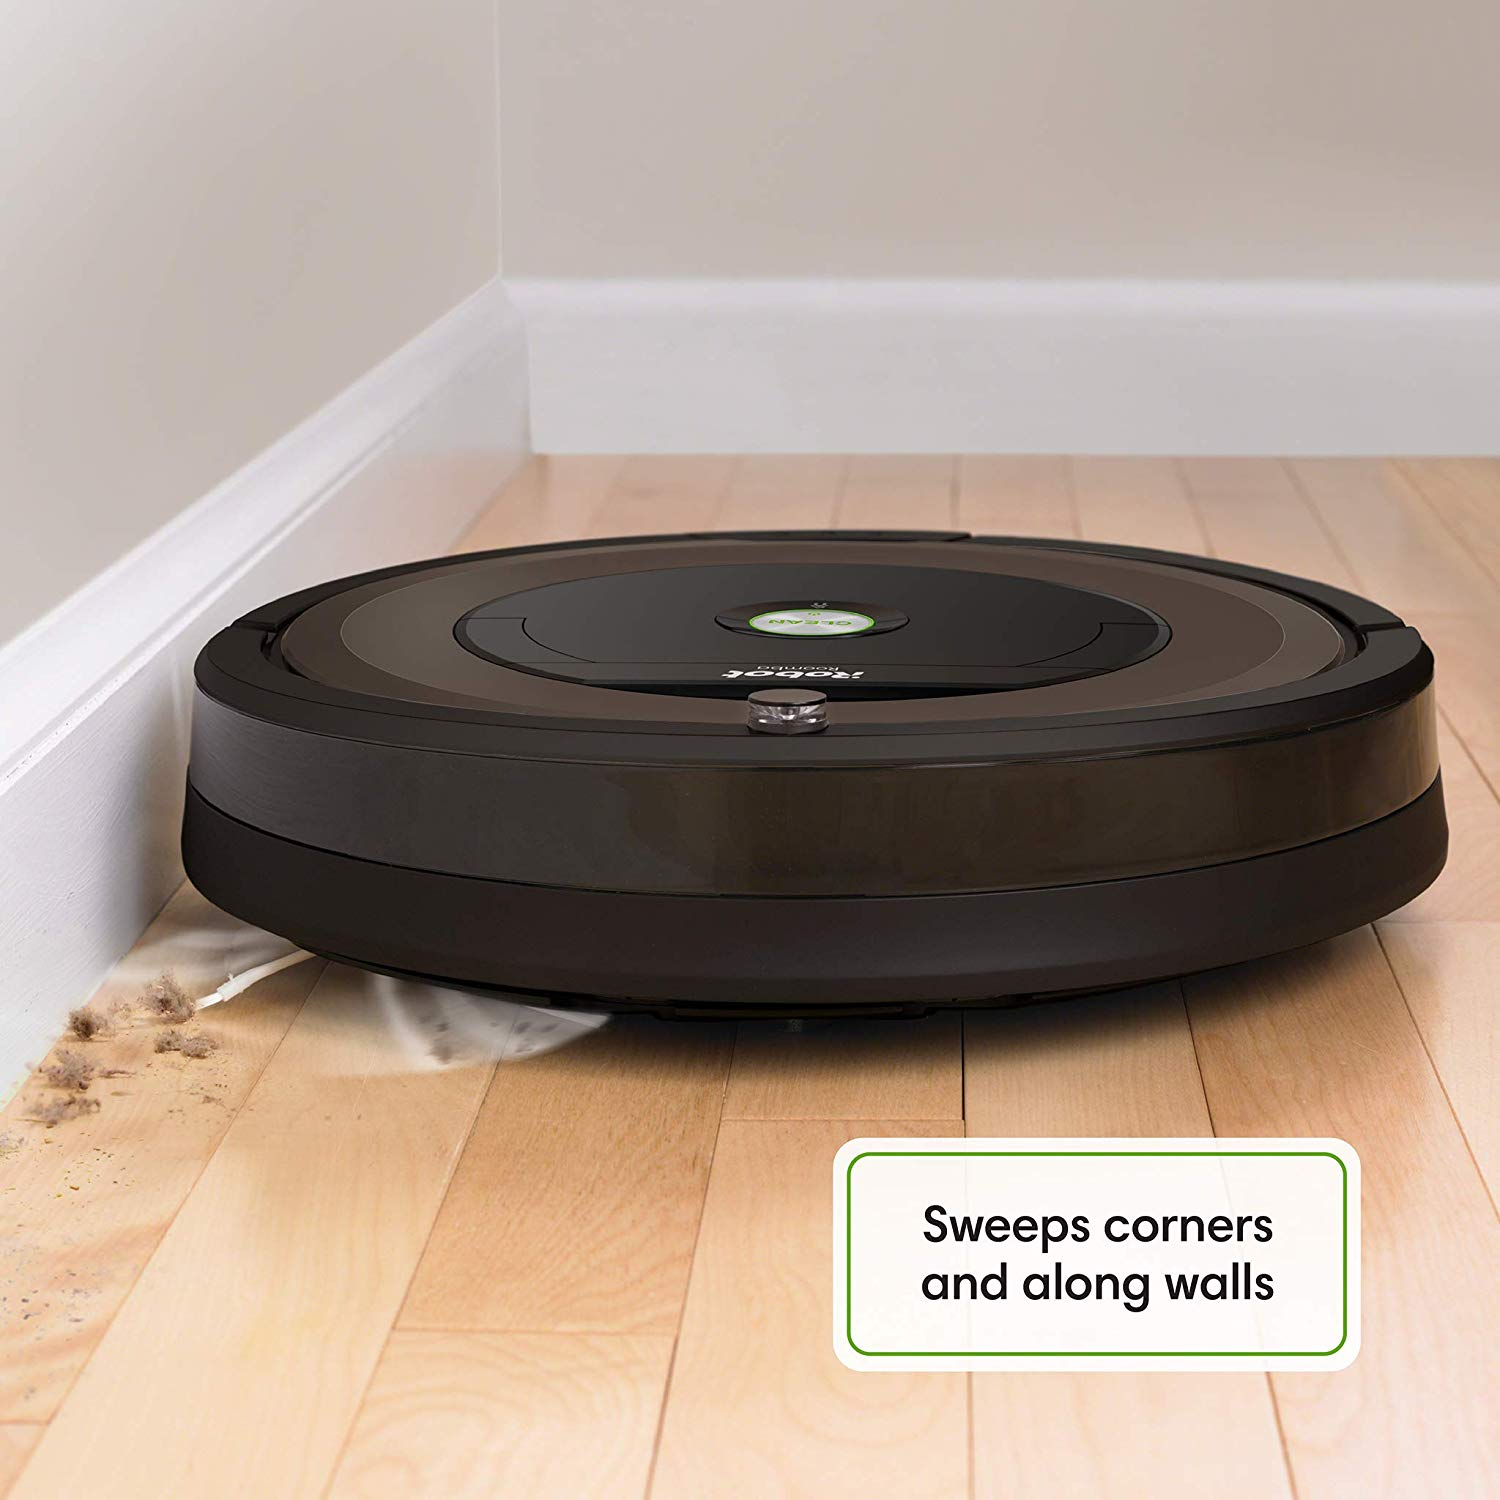 iRobot 890 roomba robot vacuum cleaner sweeping along walls and corners, best irobot vacuum cleaner for hardwood floors and pets hairs